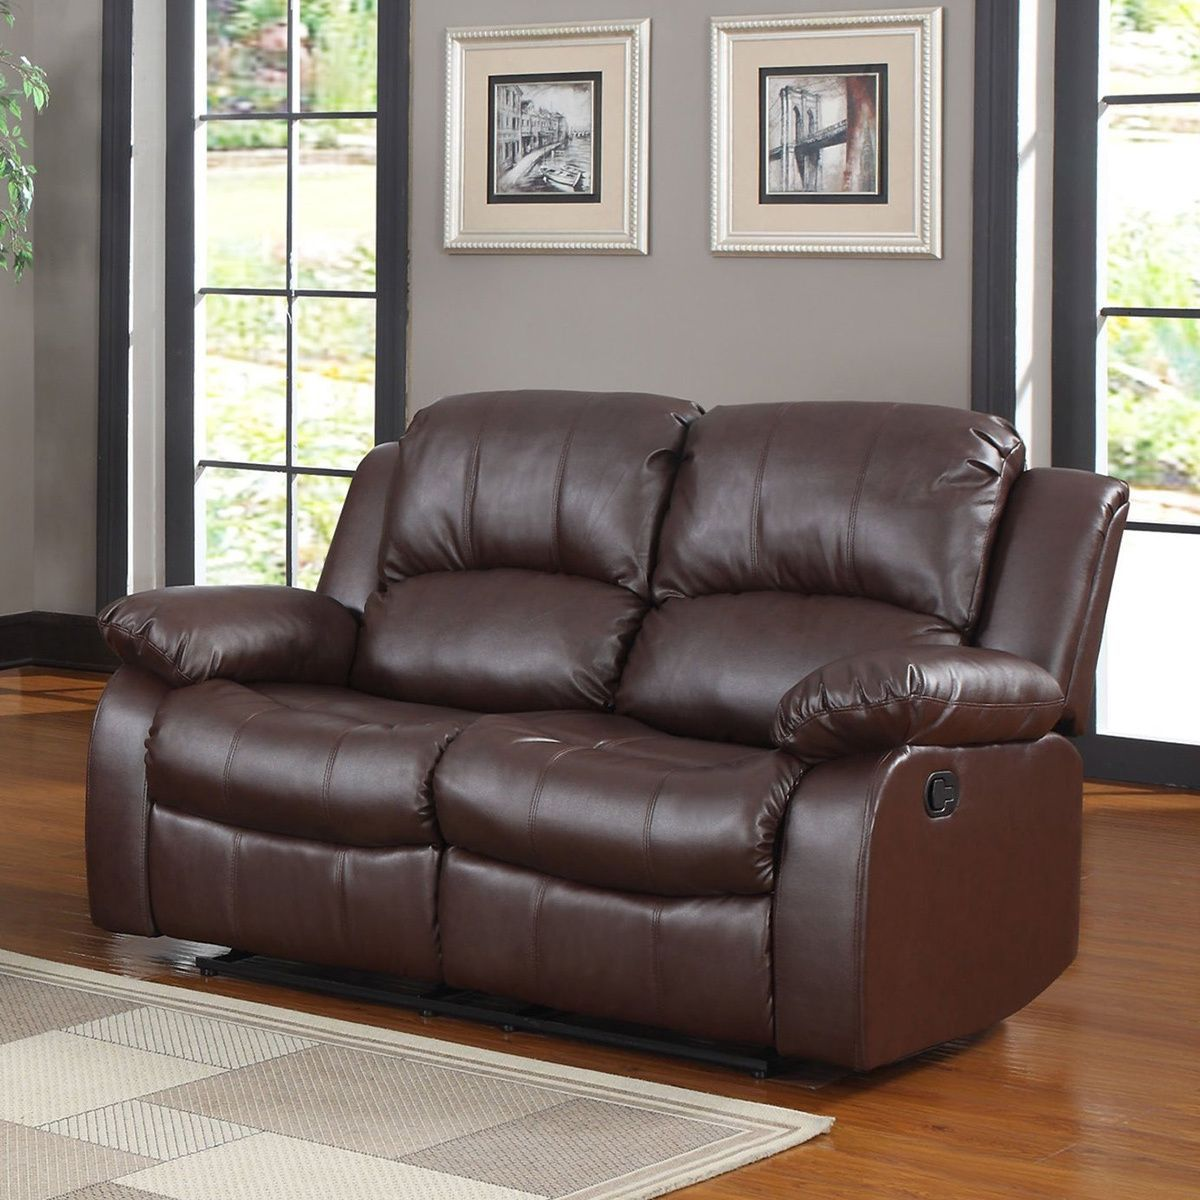 madison classic oversize and overstuffed 2 seat bonded leather double recliner loveseat black faux leather